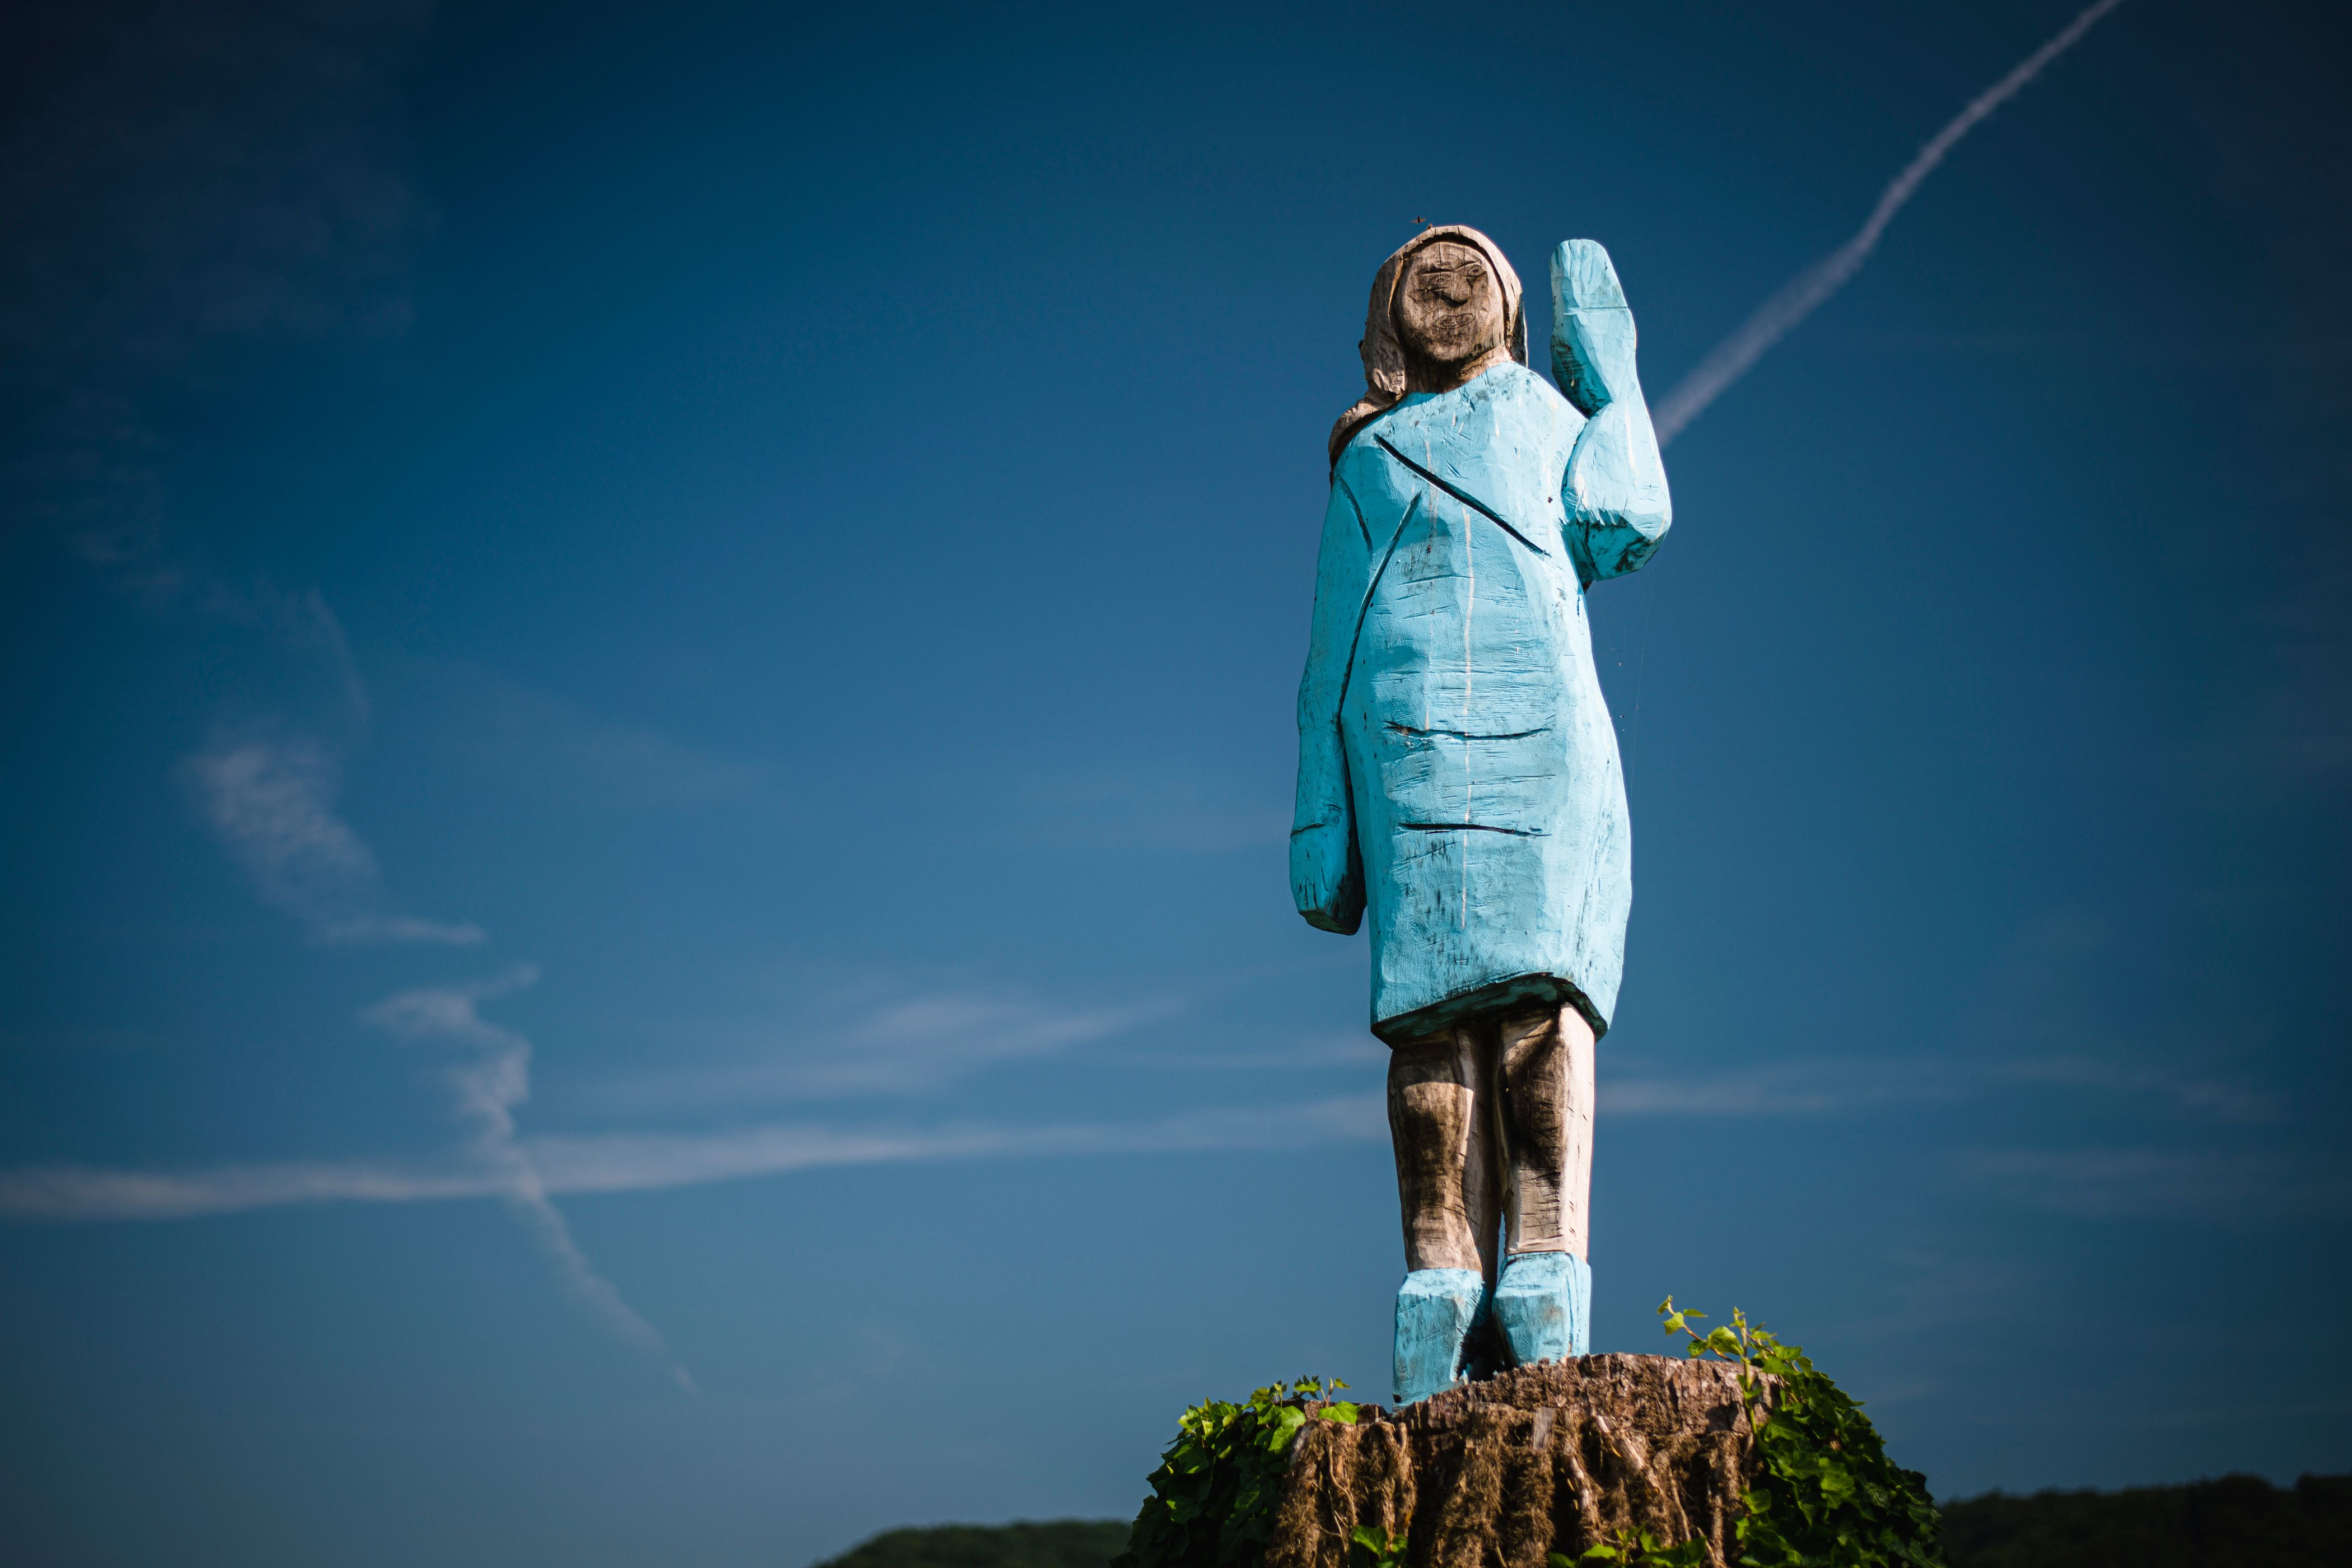 A picture taken on July 5, 2019 shows what conceptual artist Ales 'Maxi' Zupevc claims is the first ever monument of Melania Trump, set in the fields near town of Sevnica, US First Ladys hometown. - After Melania cake, Melania honey, and even Melania slippers, the Slovenian hometown of the US's first lady will now boast a statue of its most famous daughter -- albeit one which has faced decidedly mixed reviews. The life-size statue on the outskirts of Sevnica was inaugurated on July 5, 2019. (Photo by Jure Makovec / AFP) / RESTRICTED TO EDITORIAL USE - MANDATORY MENTION OF THE ARTIST UPON PUBLICATION - TO ILLUSTRATE THE EVENT AS SPECIFIED IN THE CAPTION        (Photo credit should read JURE MAKOVEC/AFP via Getty Images)